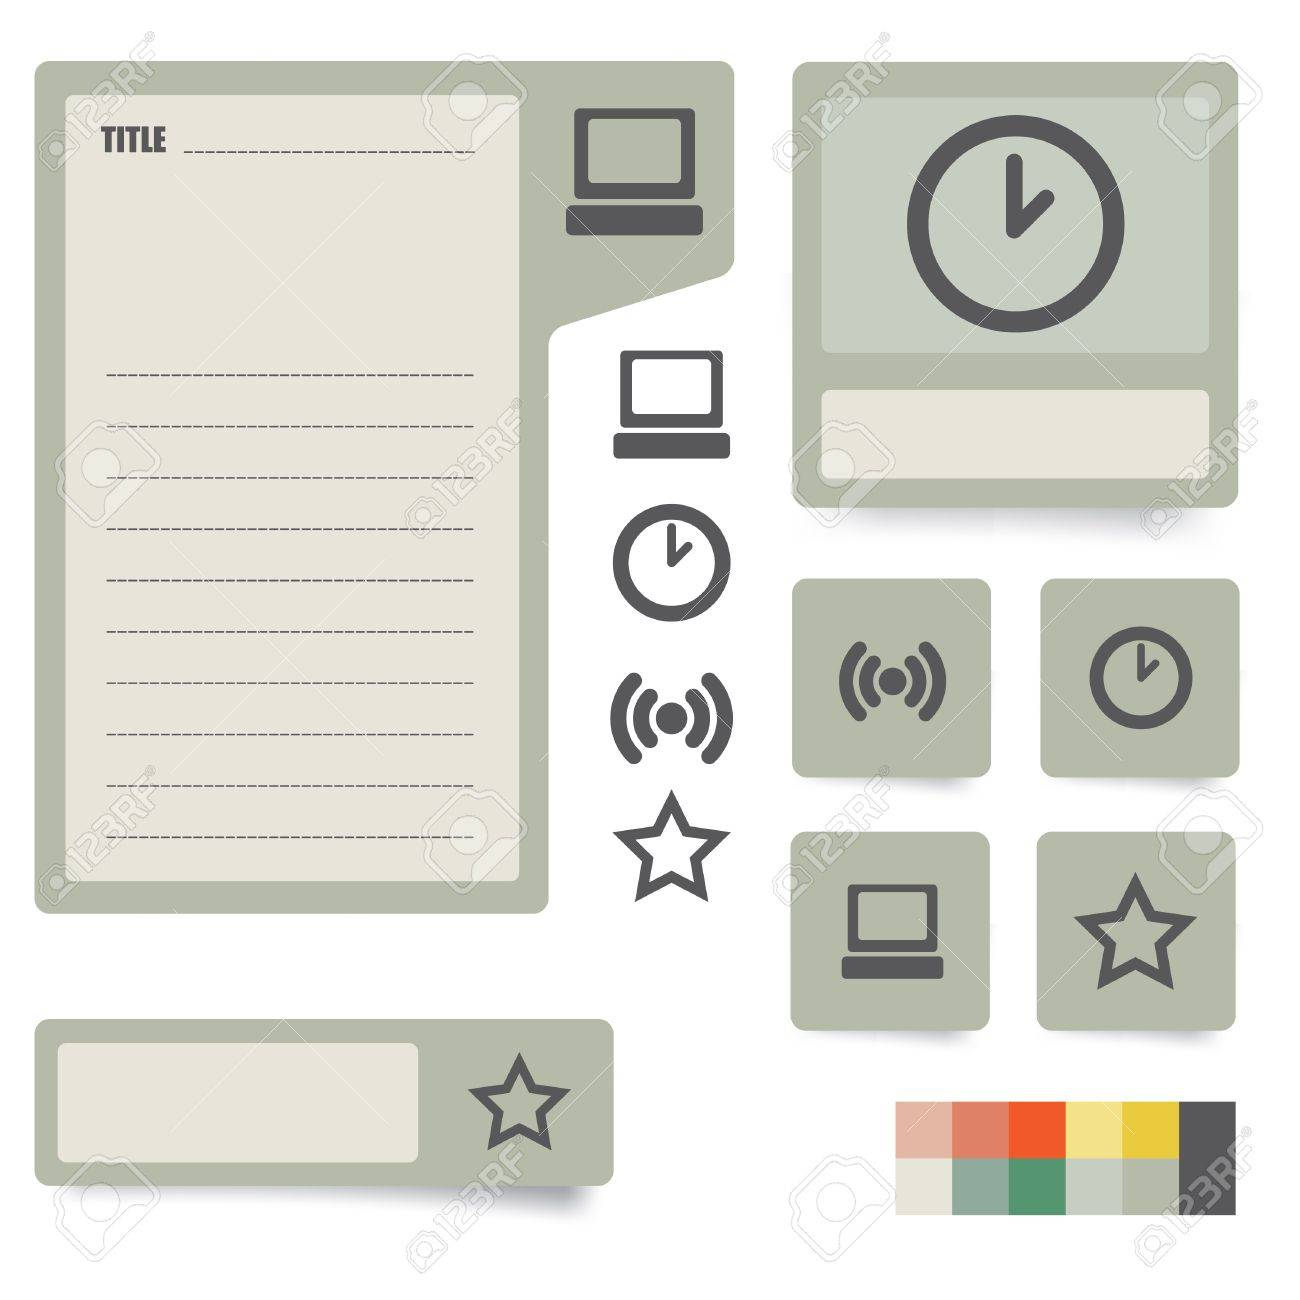 Icons And Paper Stickers With Instruments Components And Features